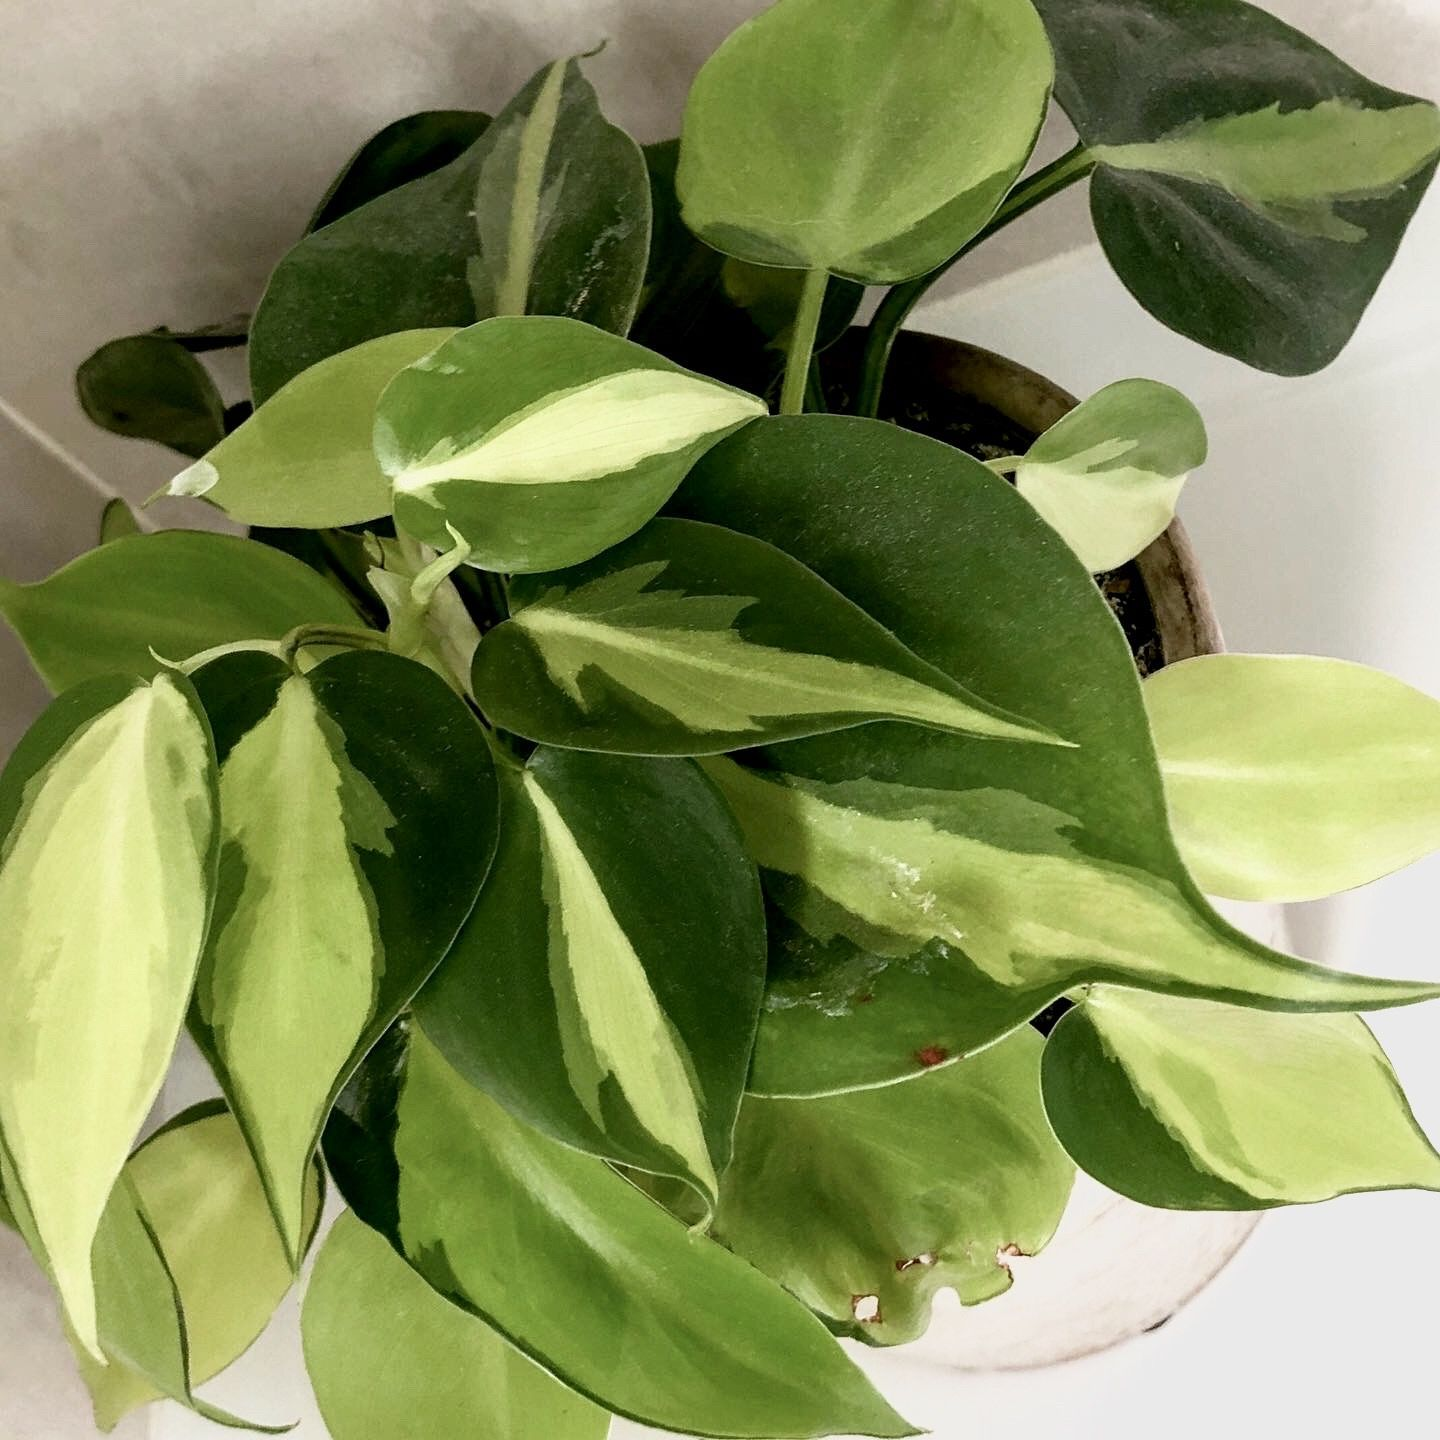 10 Poisonous Indoor Plants Your Children and Pets Should Avoid - My Tasteful Space#avoid #children #indoor #pets #plants #poisonous #space #tasteful